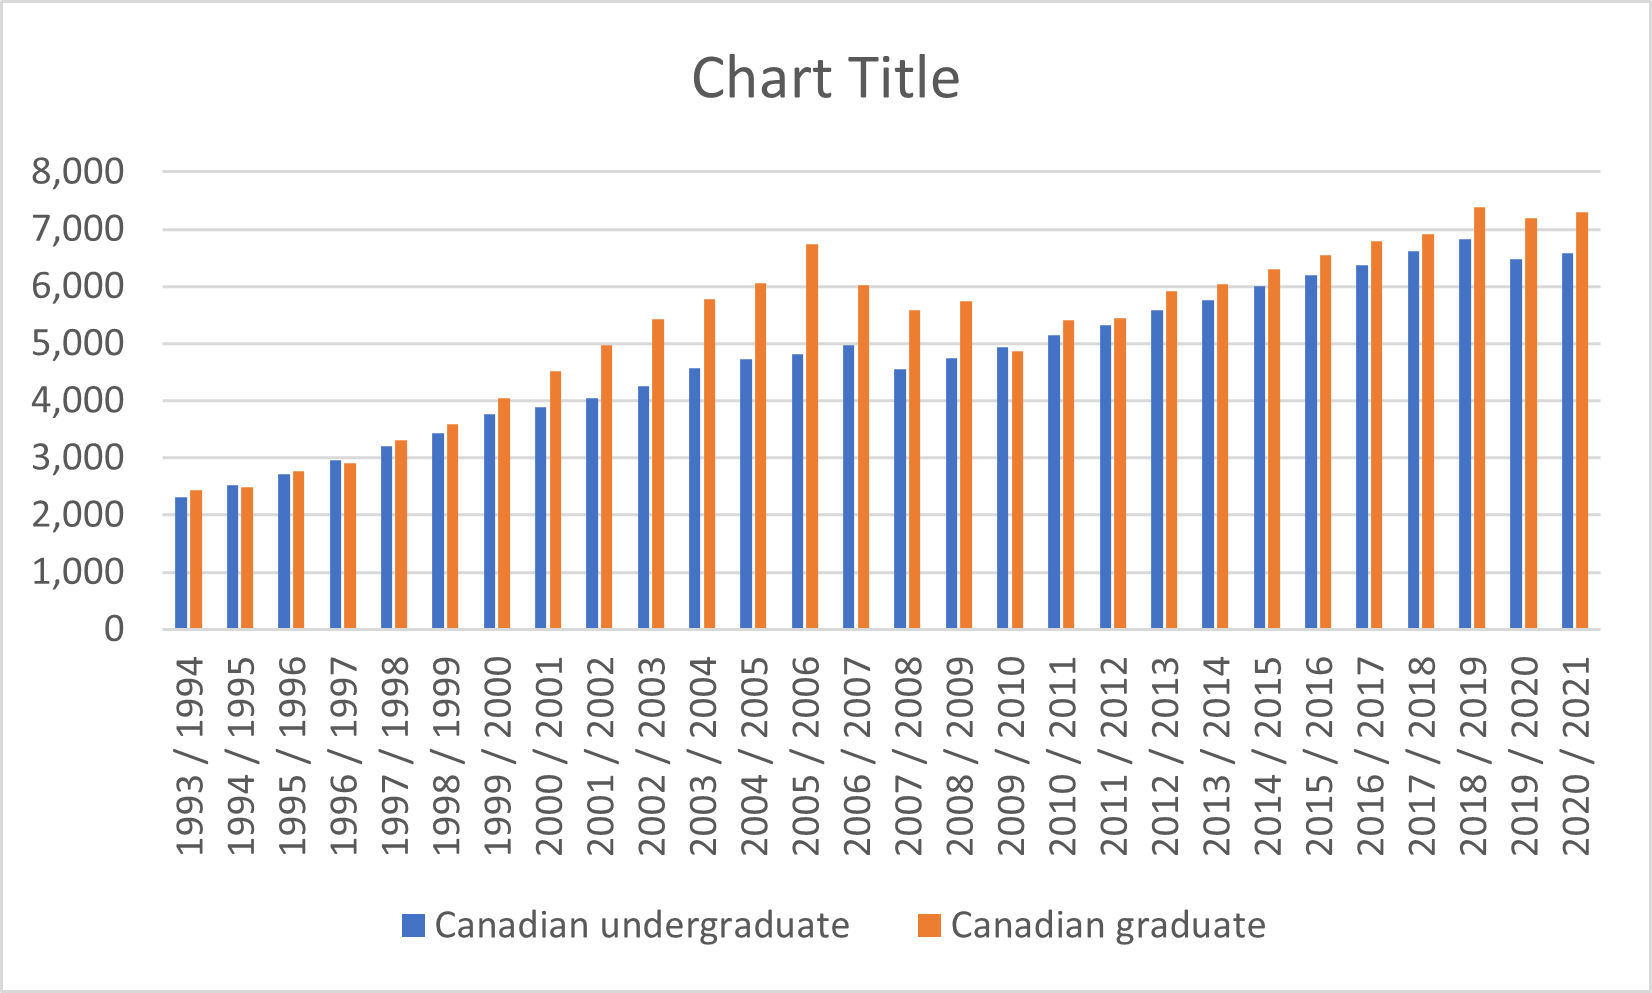 Cost of Tuition Per Semester Across Canada, 1994 to 2019